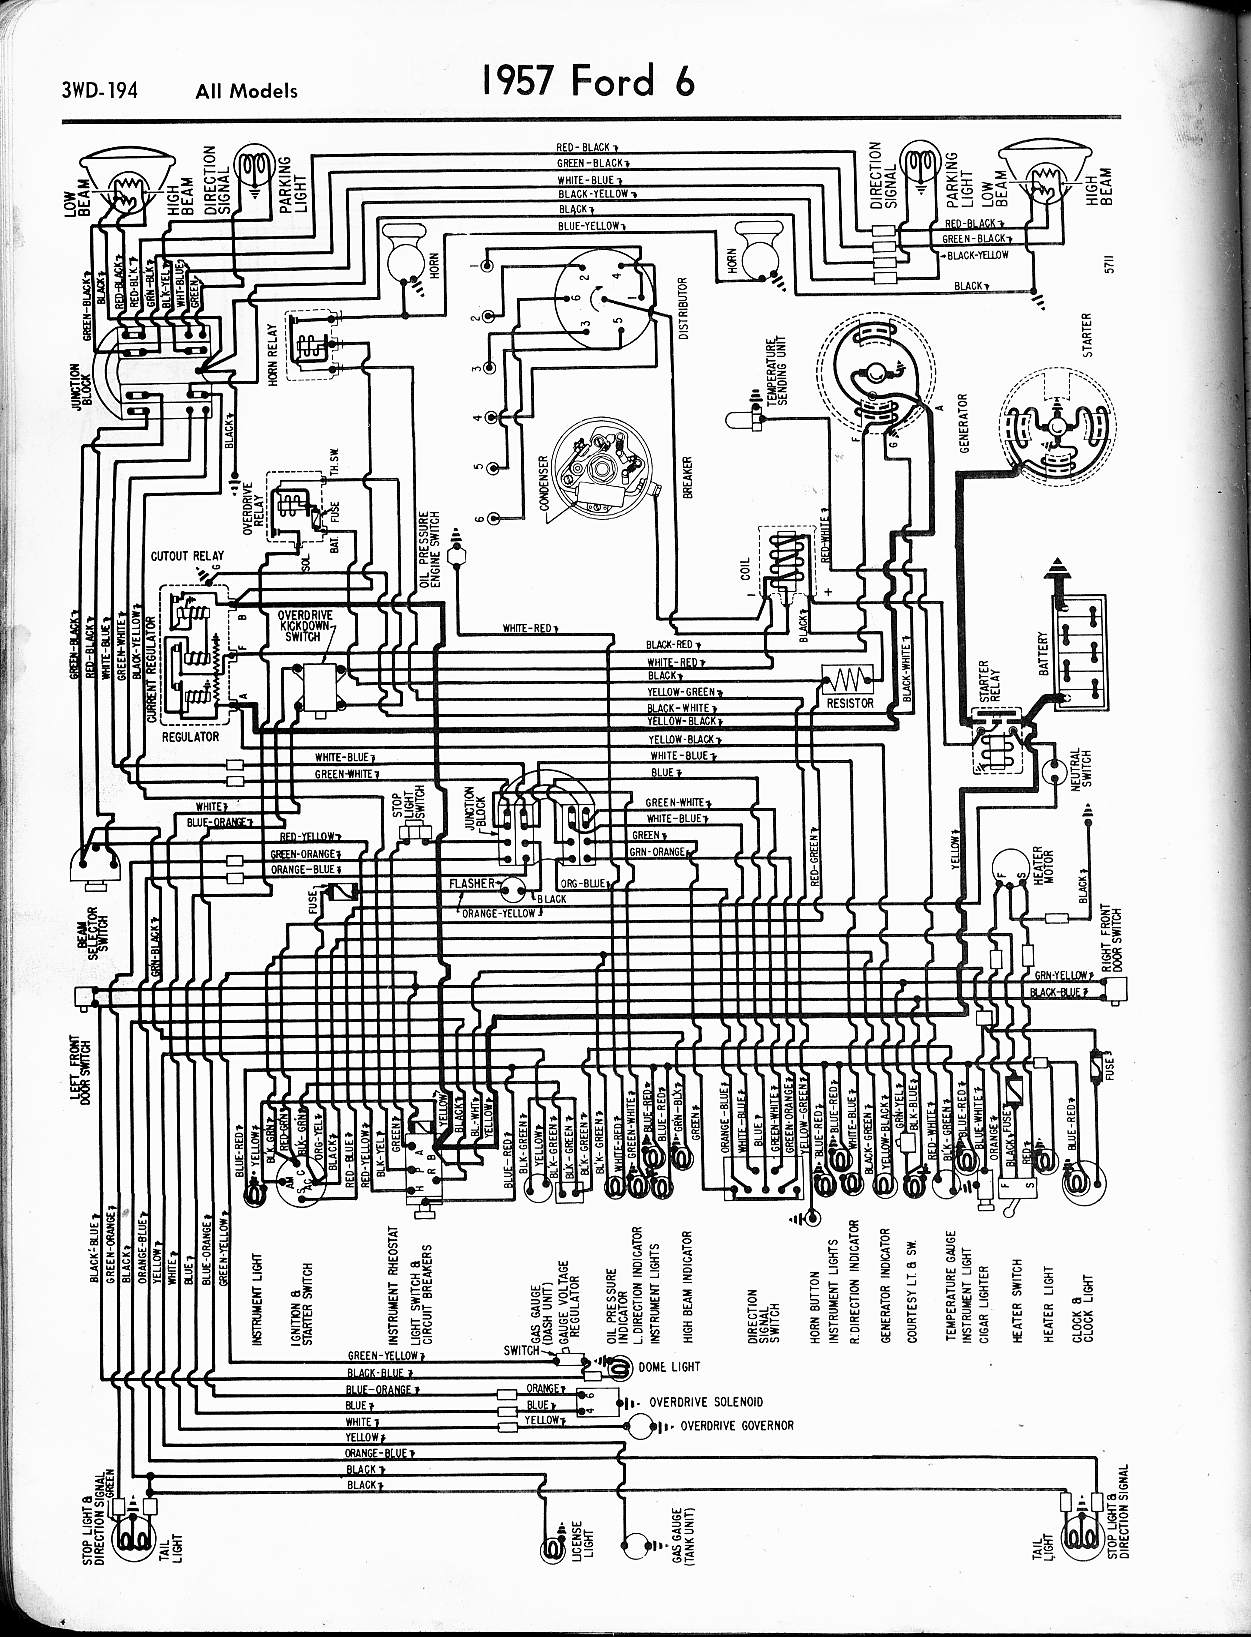 57 65 ford wiring diagrams ford 4.6 engine diagram 1957 6 cyl all models